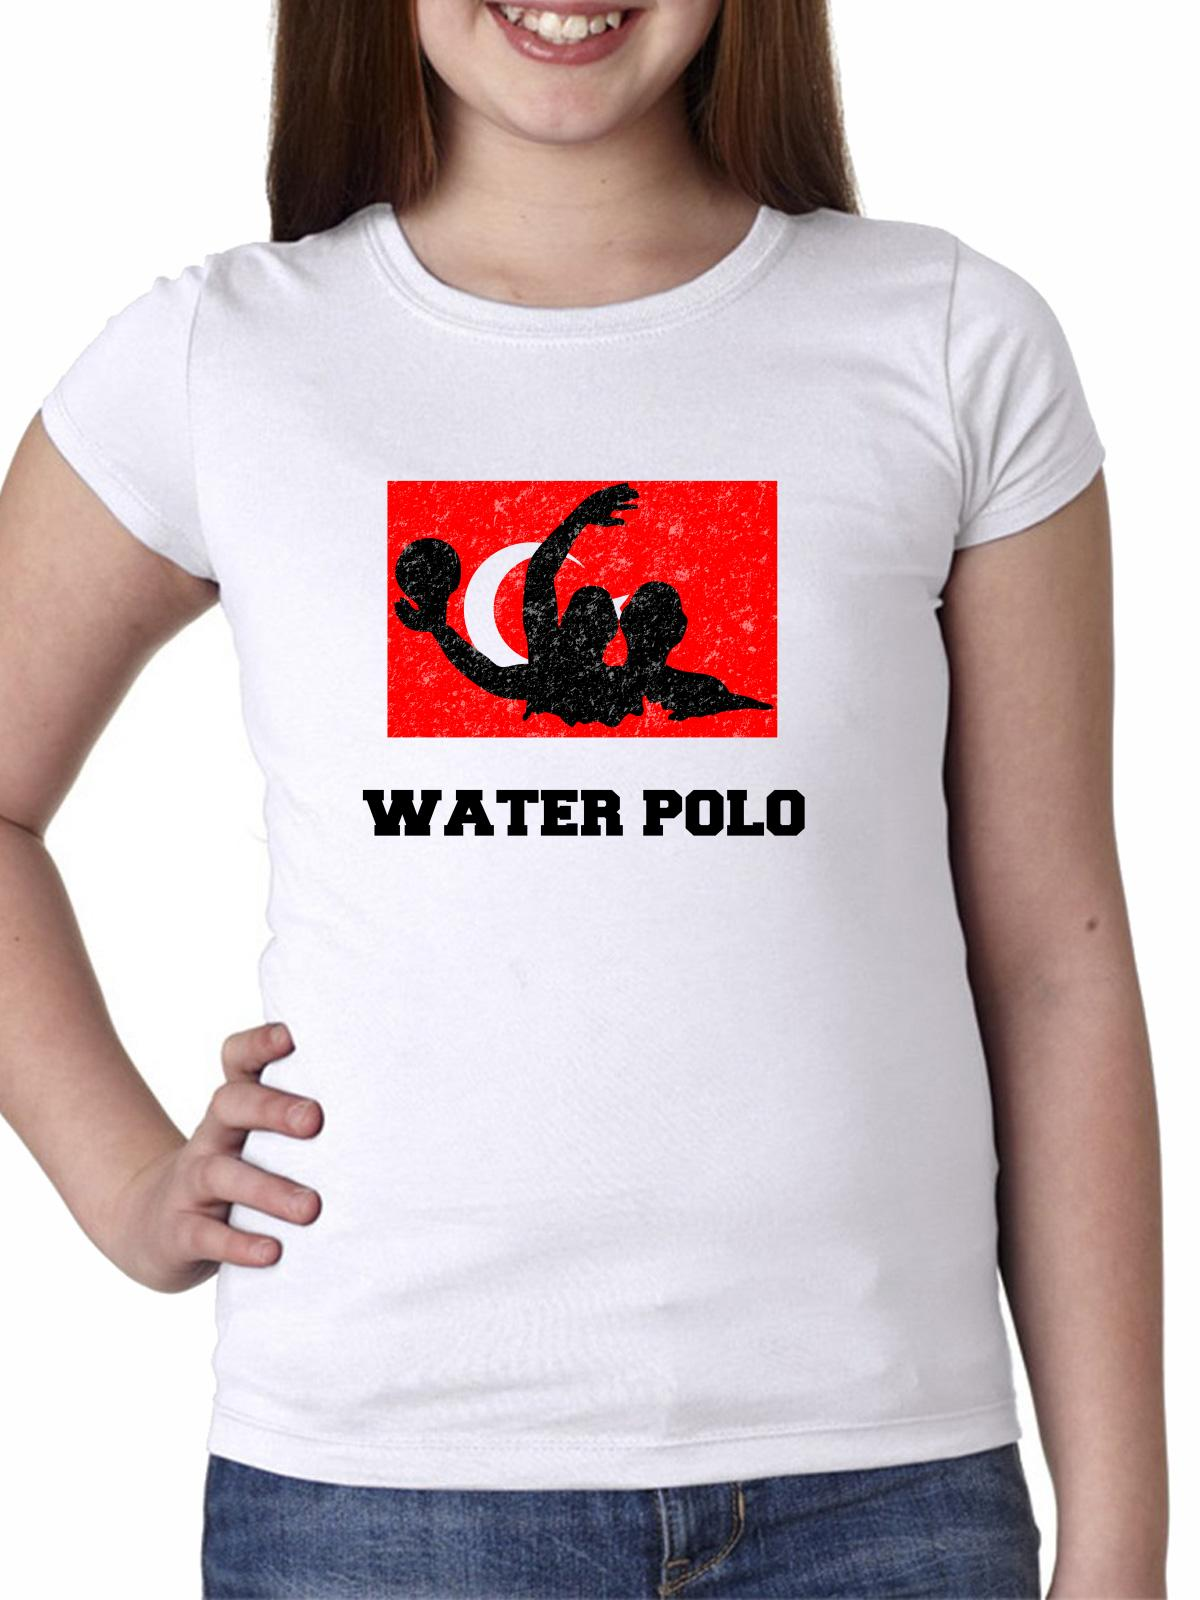 Turkey Olympic Water Polo Flag Silhouette Girl's Cotton Youth T-Shirt by Hollywood Thread